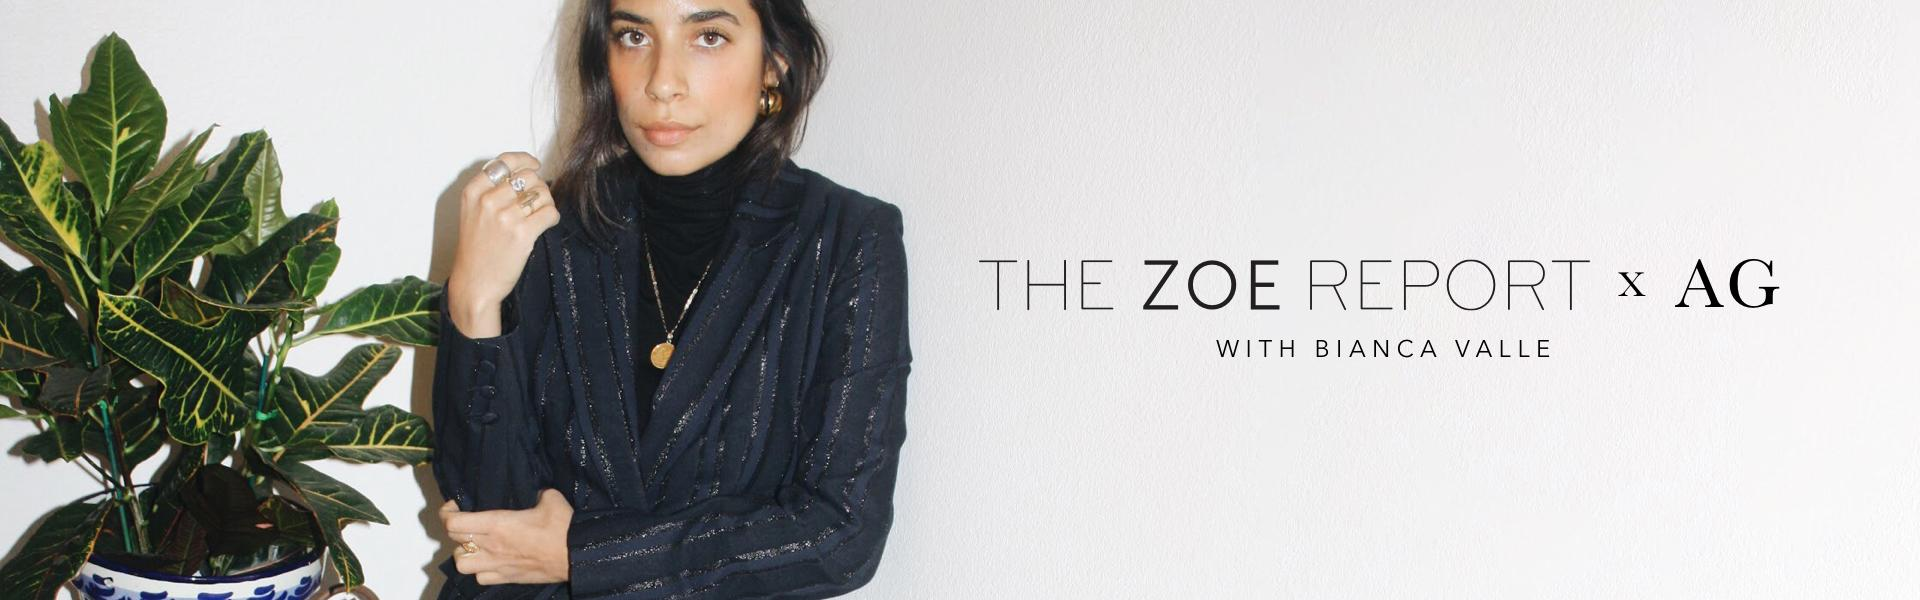 The Zoe Report and AG style edit by Bianca Vialle